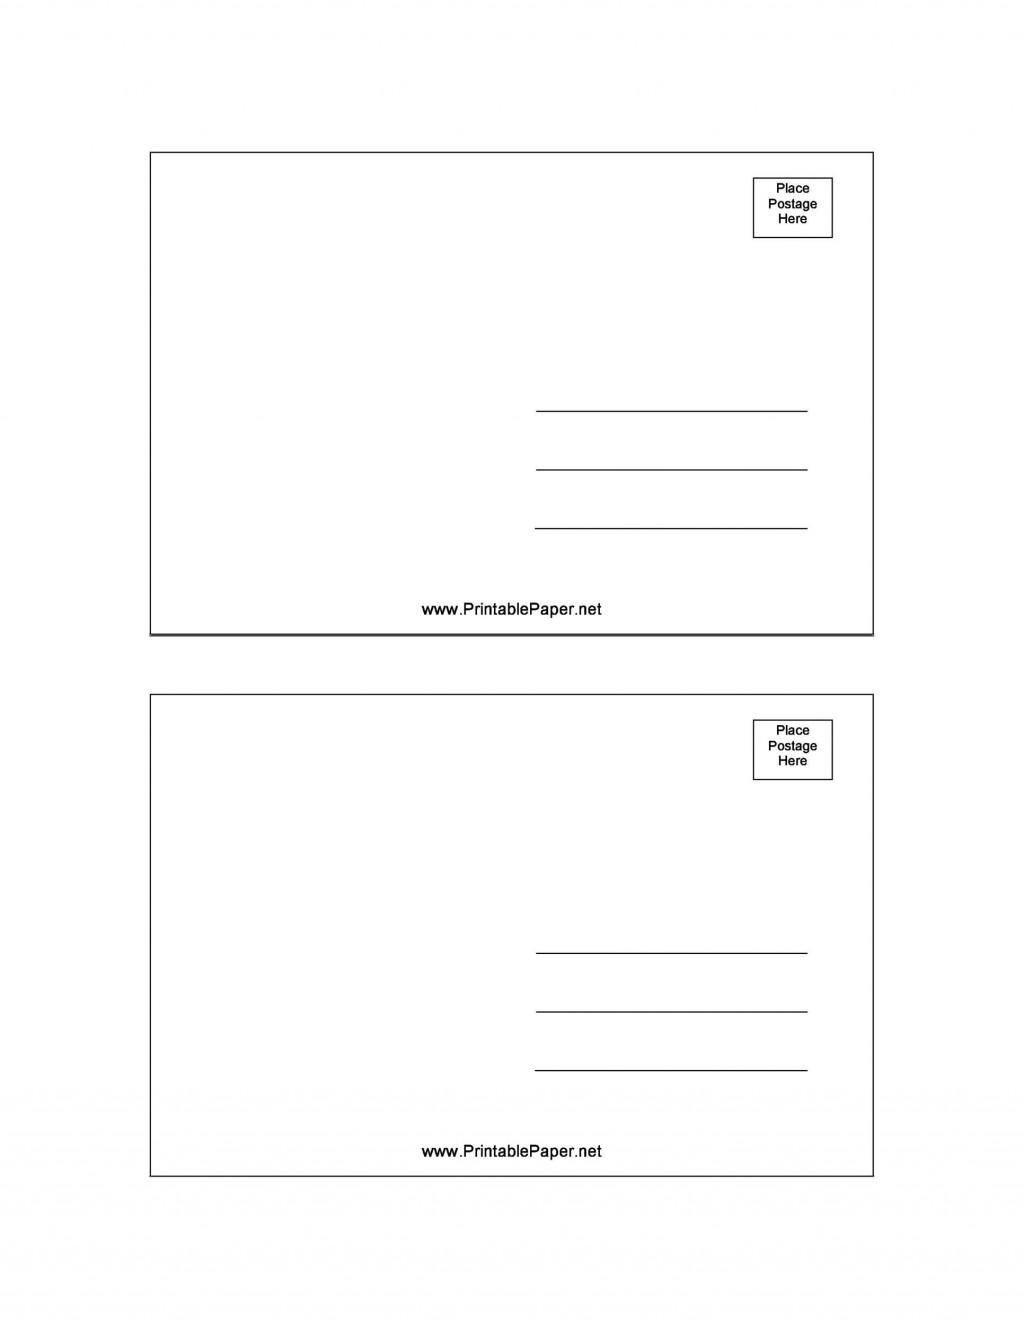 007 Amazing Free Postcard Template Download Microsoft Word High Definition Large